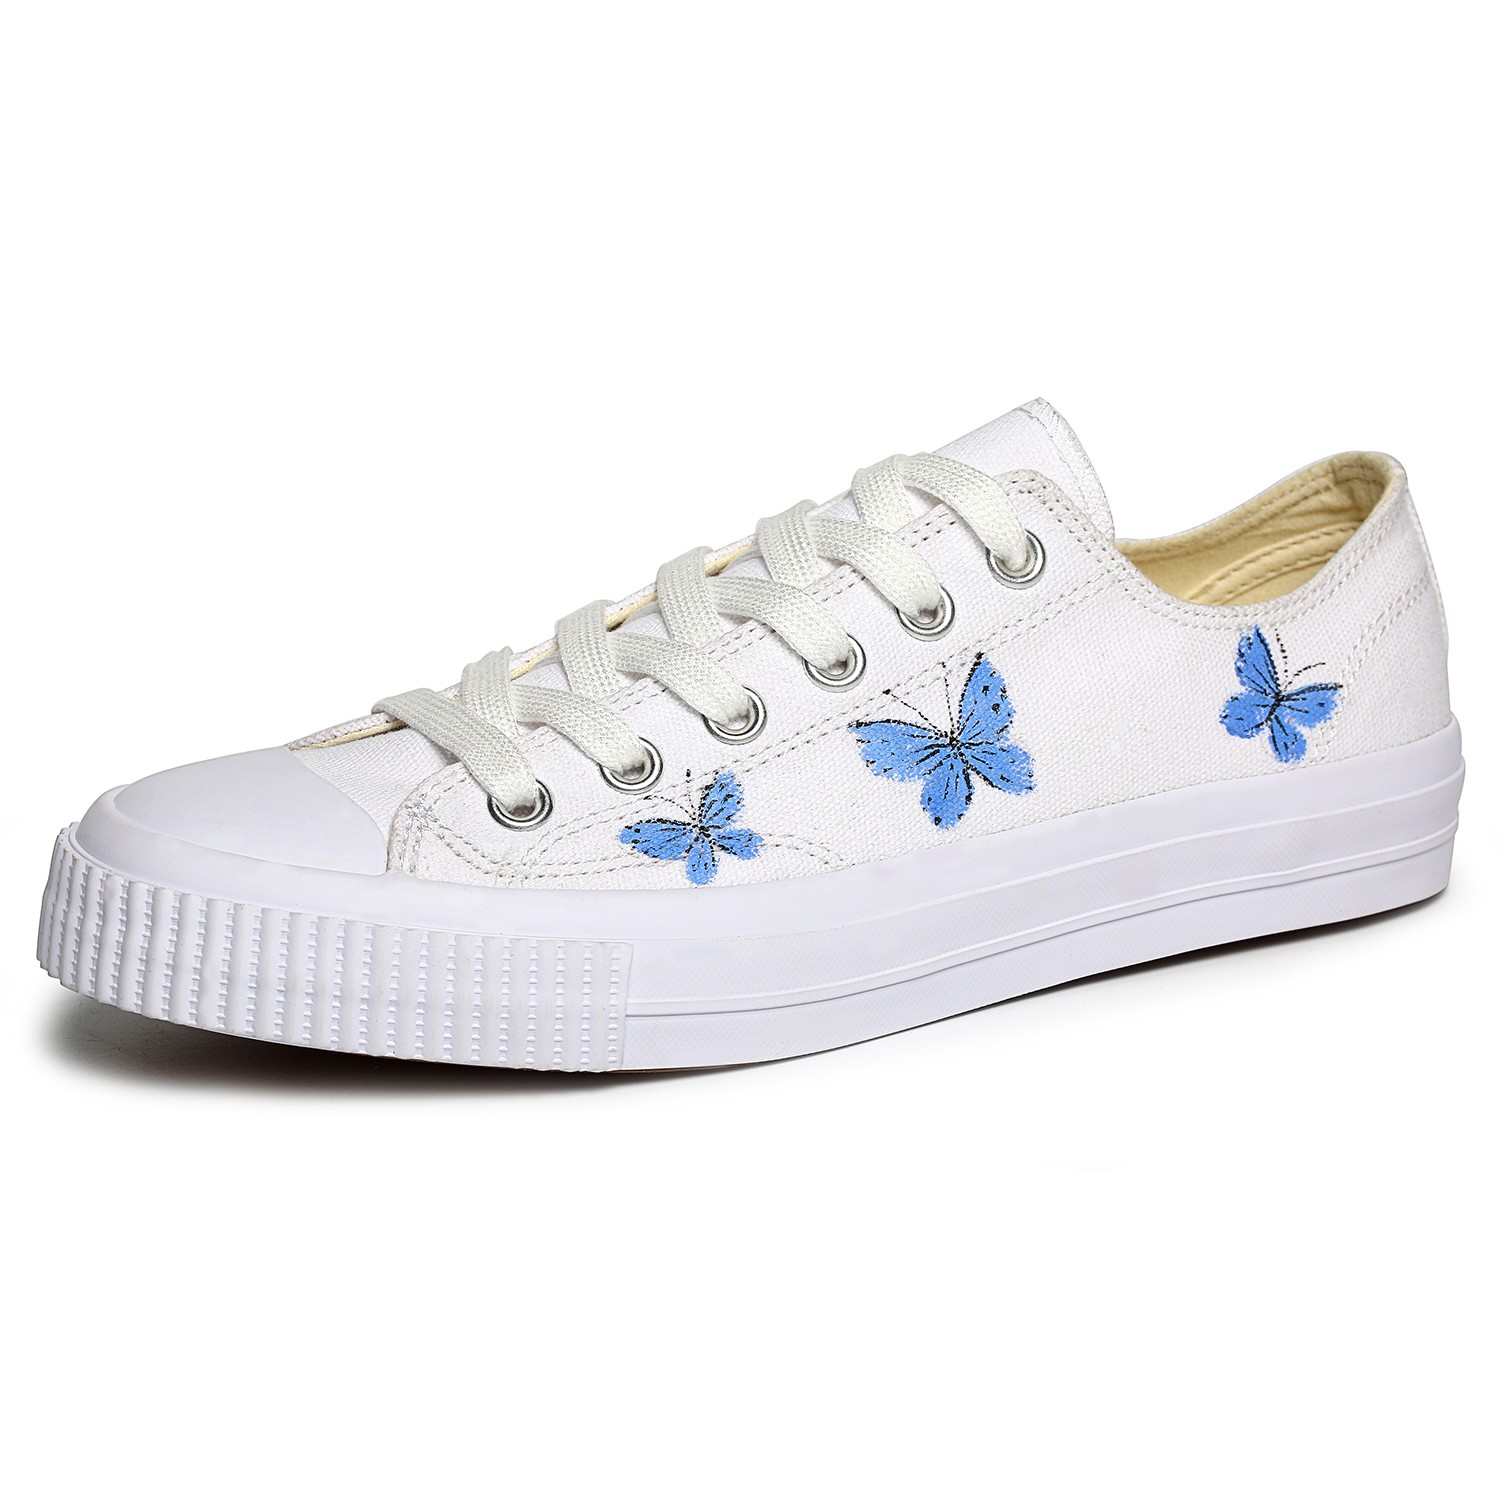 OMINE WP2002 Flat Shoes Men Painted Shoes Butterfly Pattern Canvas - White US 9